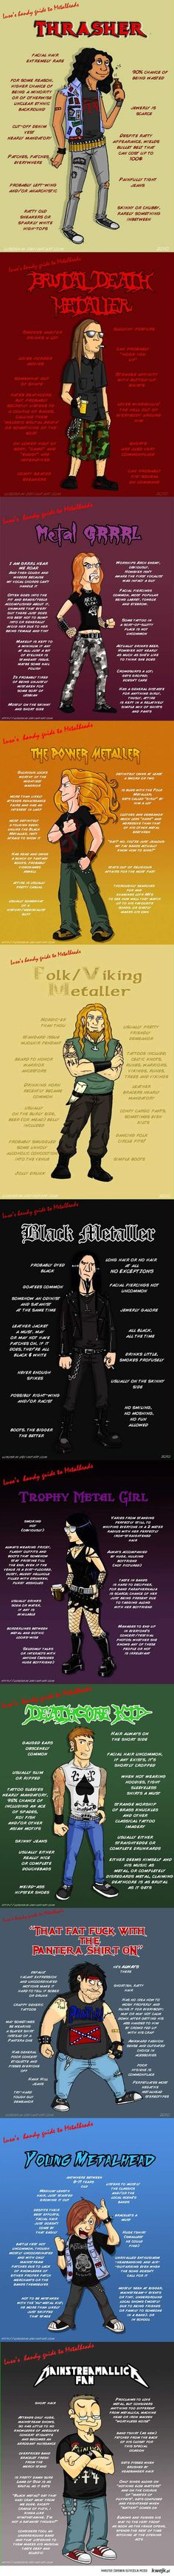 METALHEADS -- so I can understand some of my friends. >.>